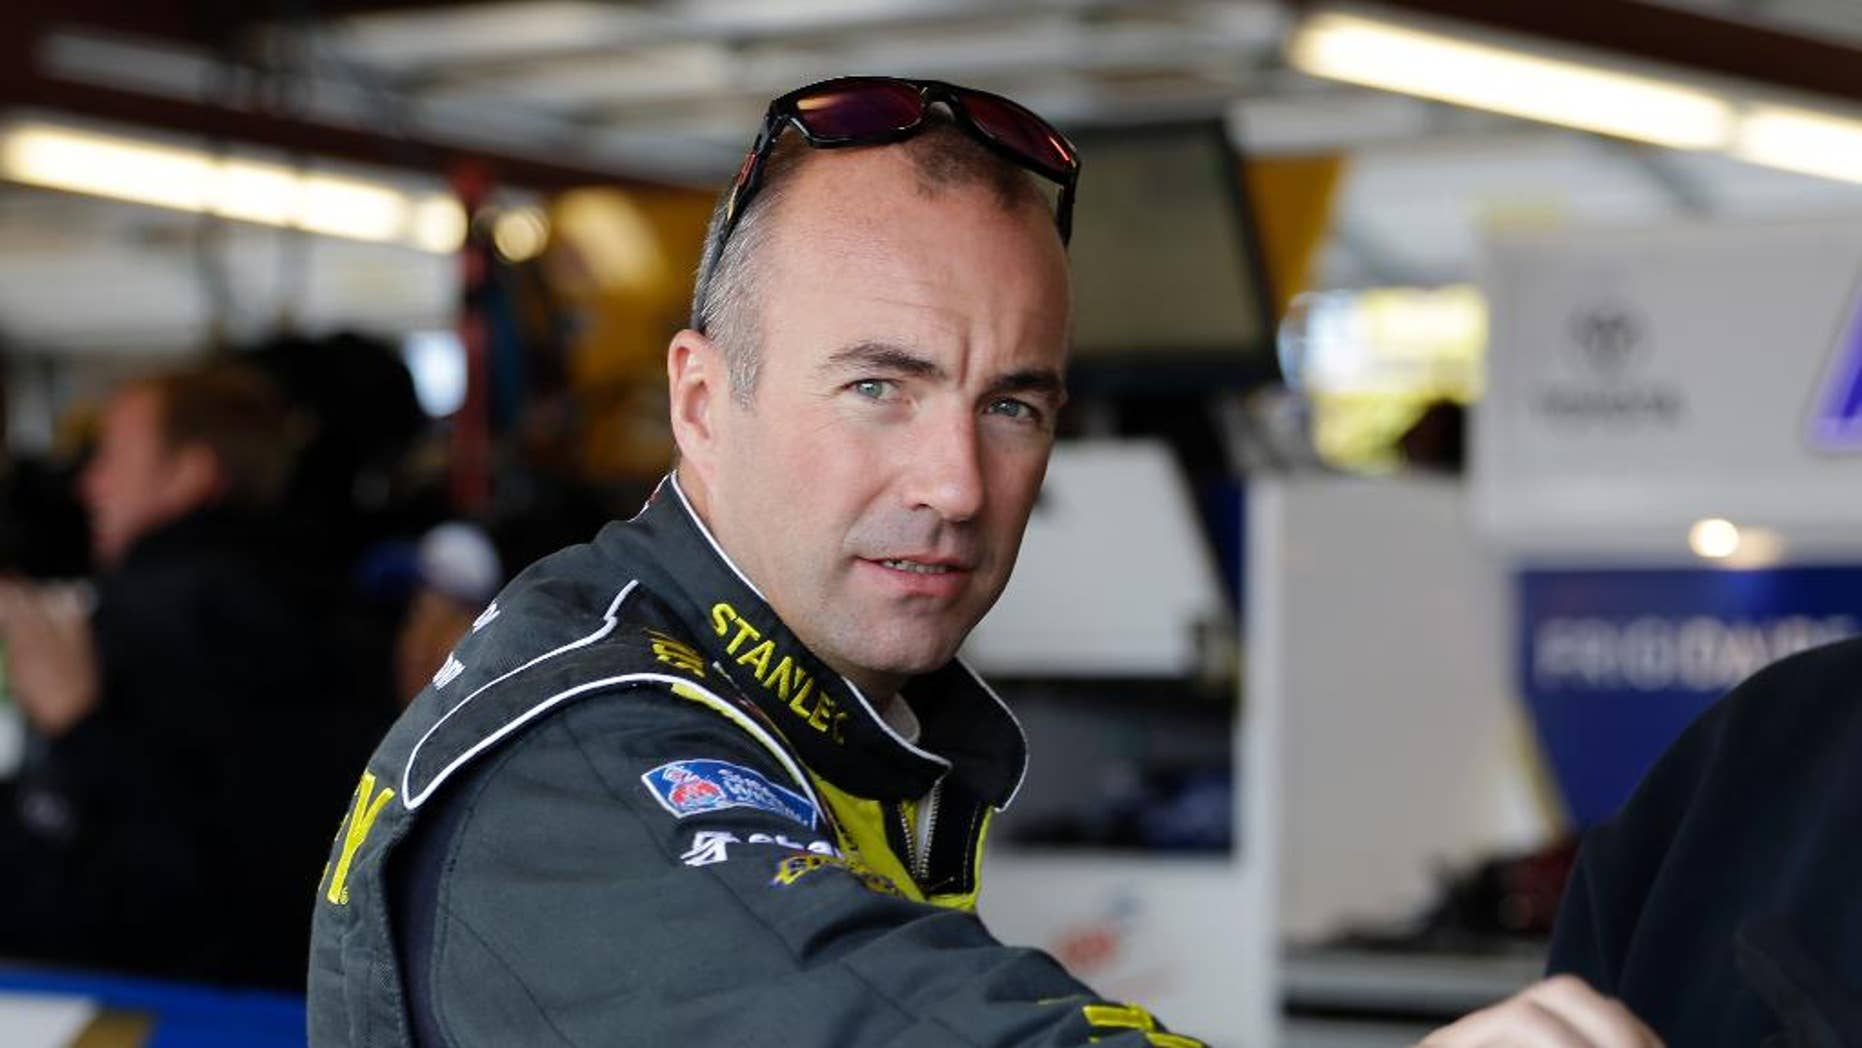 Driver Marcos Ambrose, of Australia, looks toward the outside from his garage during final practice for the NASCAR Sprint Cup Series auto race at Chicagoland Speedway in Joliet, Ill., Saturday, Sept. 13, 2014. Ambrose will leave NASCAR at the end of the season and return to his native Australia (AP Photo/Nam Y. Huh)